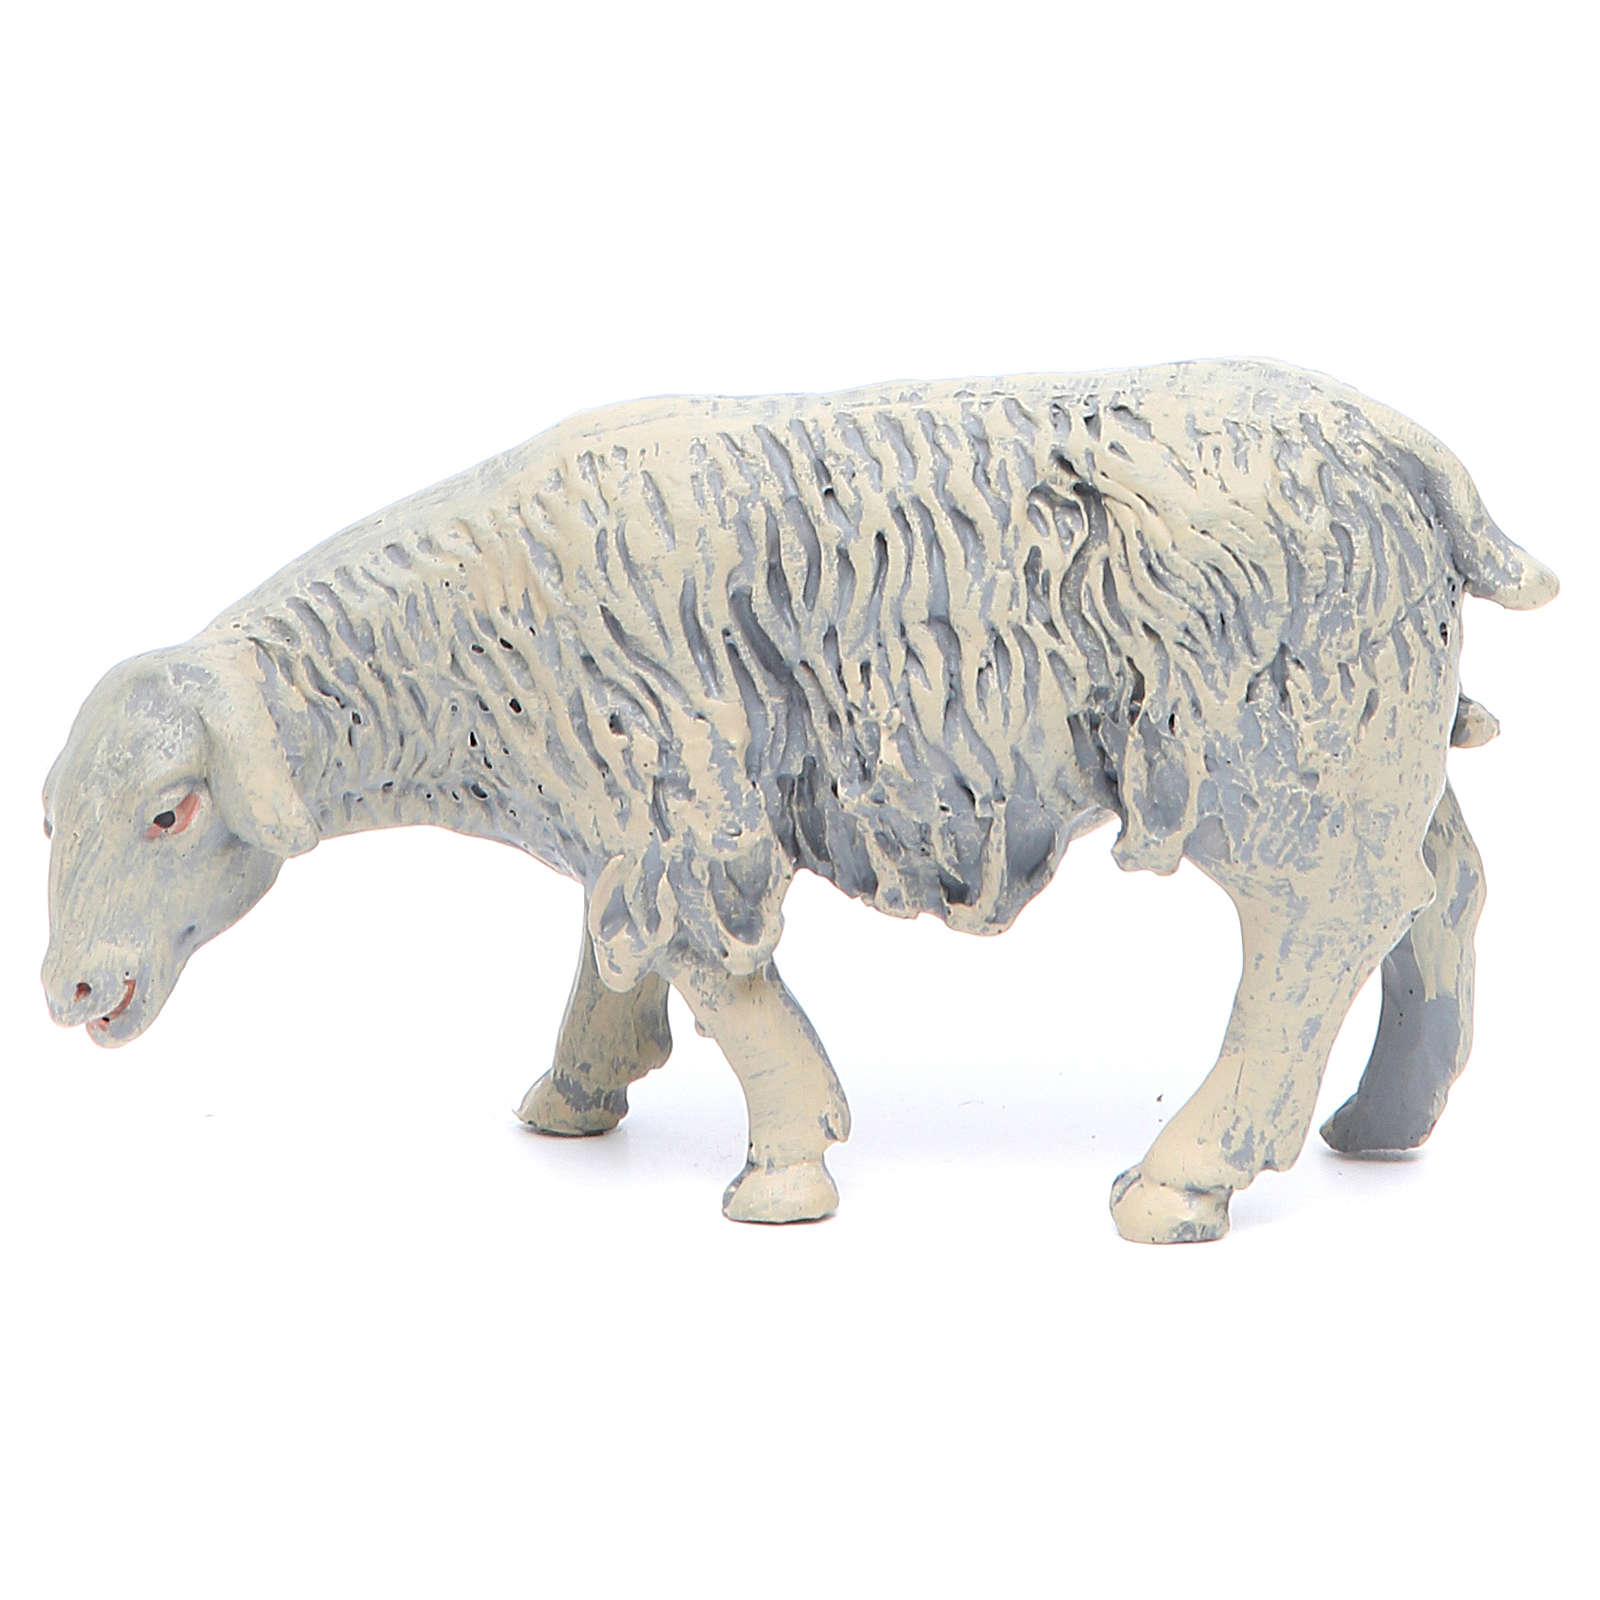 Sheep in resin 4 pieces 25 cm crib 3